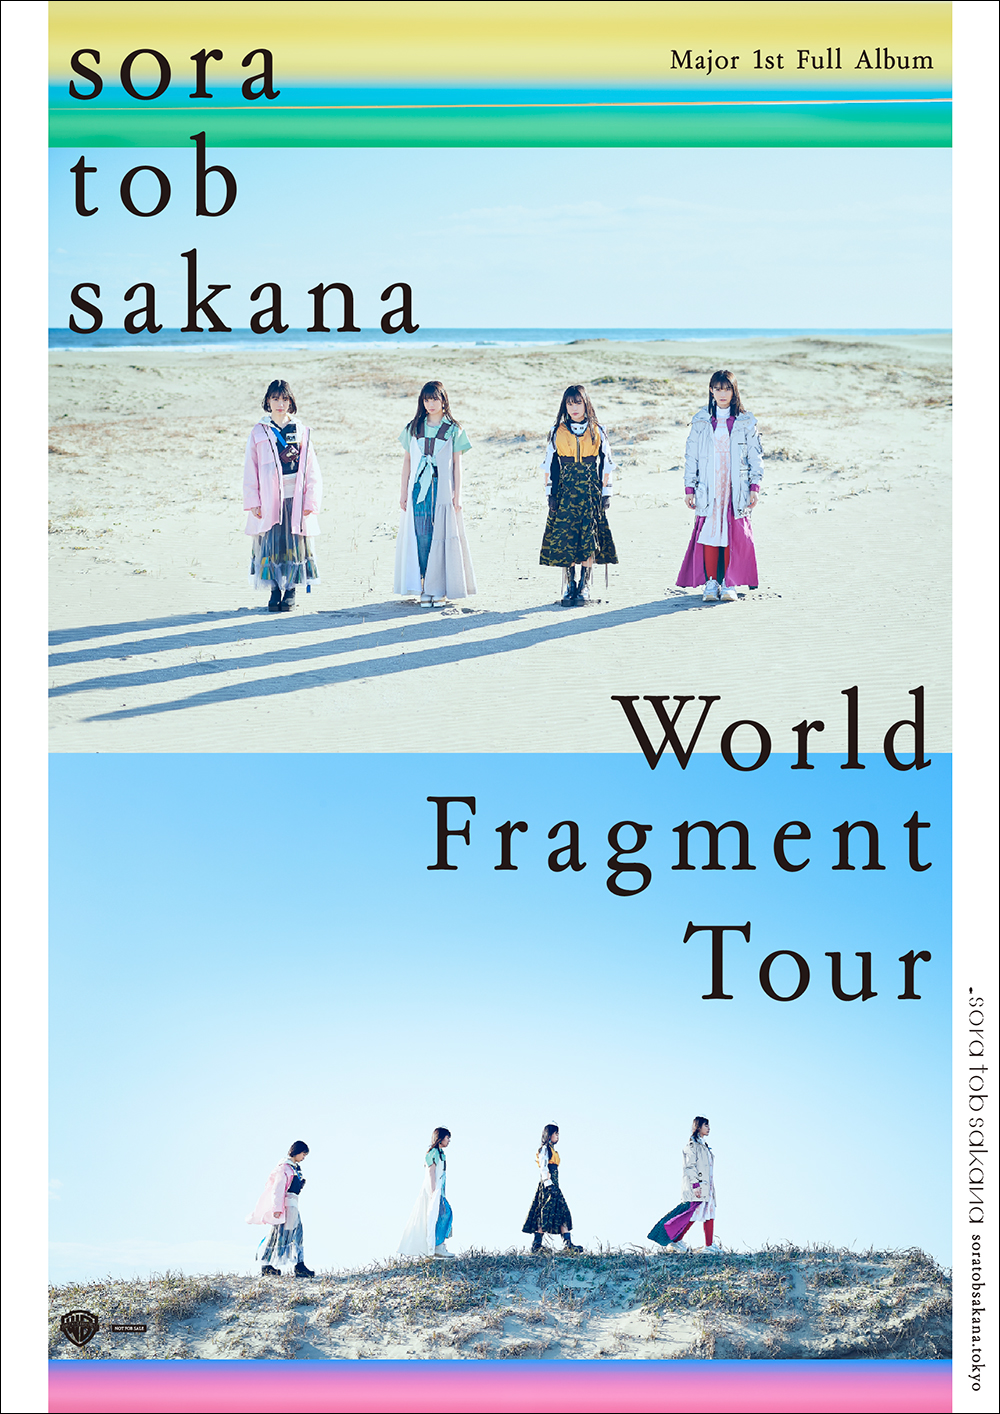 sora tob sakana「World Fragment Tour」Poster